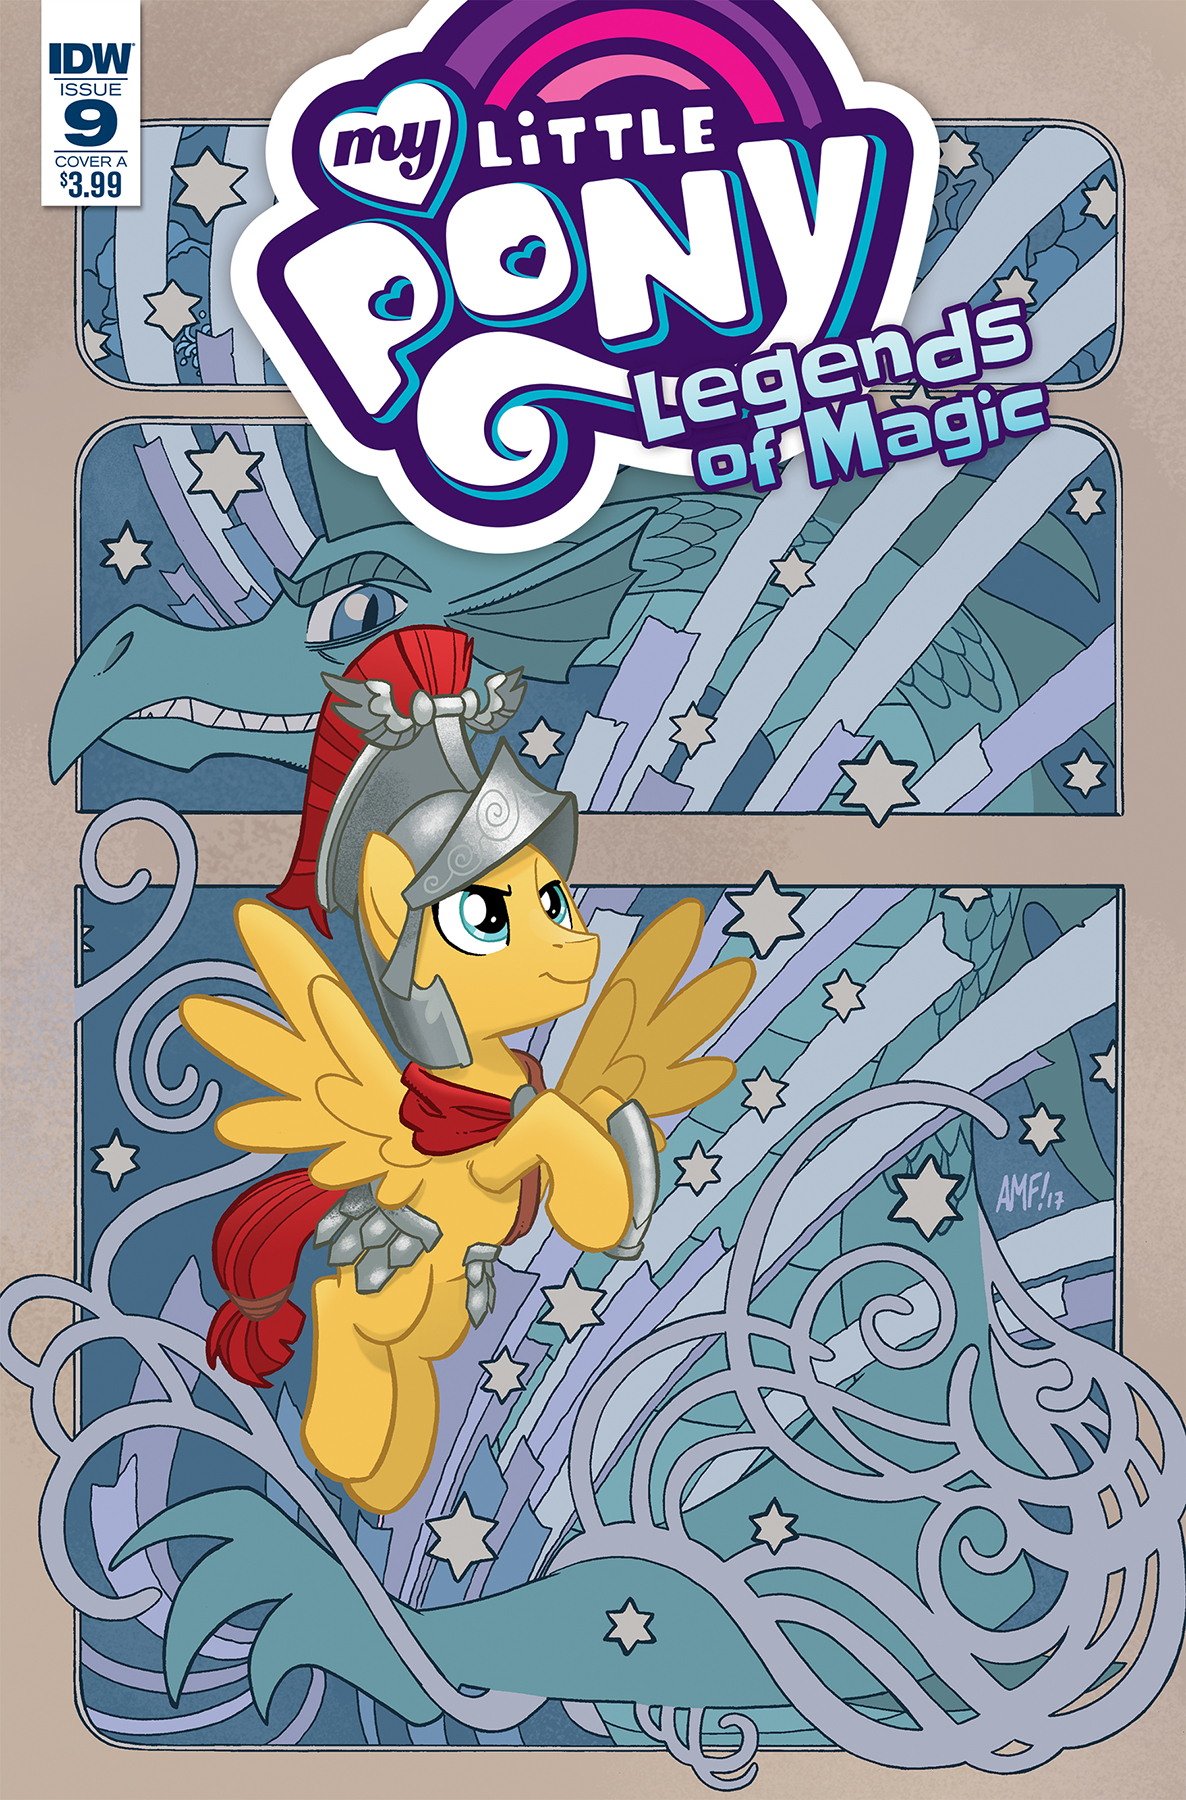 MY LITTLE PONY LEGENDS OF MAGIC #9 CVR A FLEECS